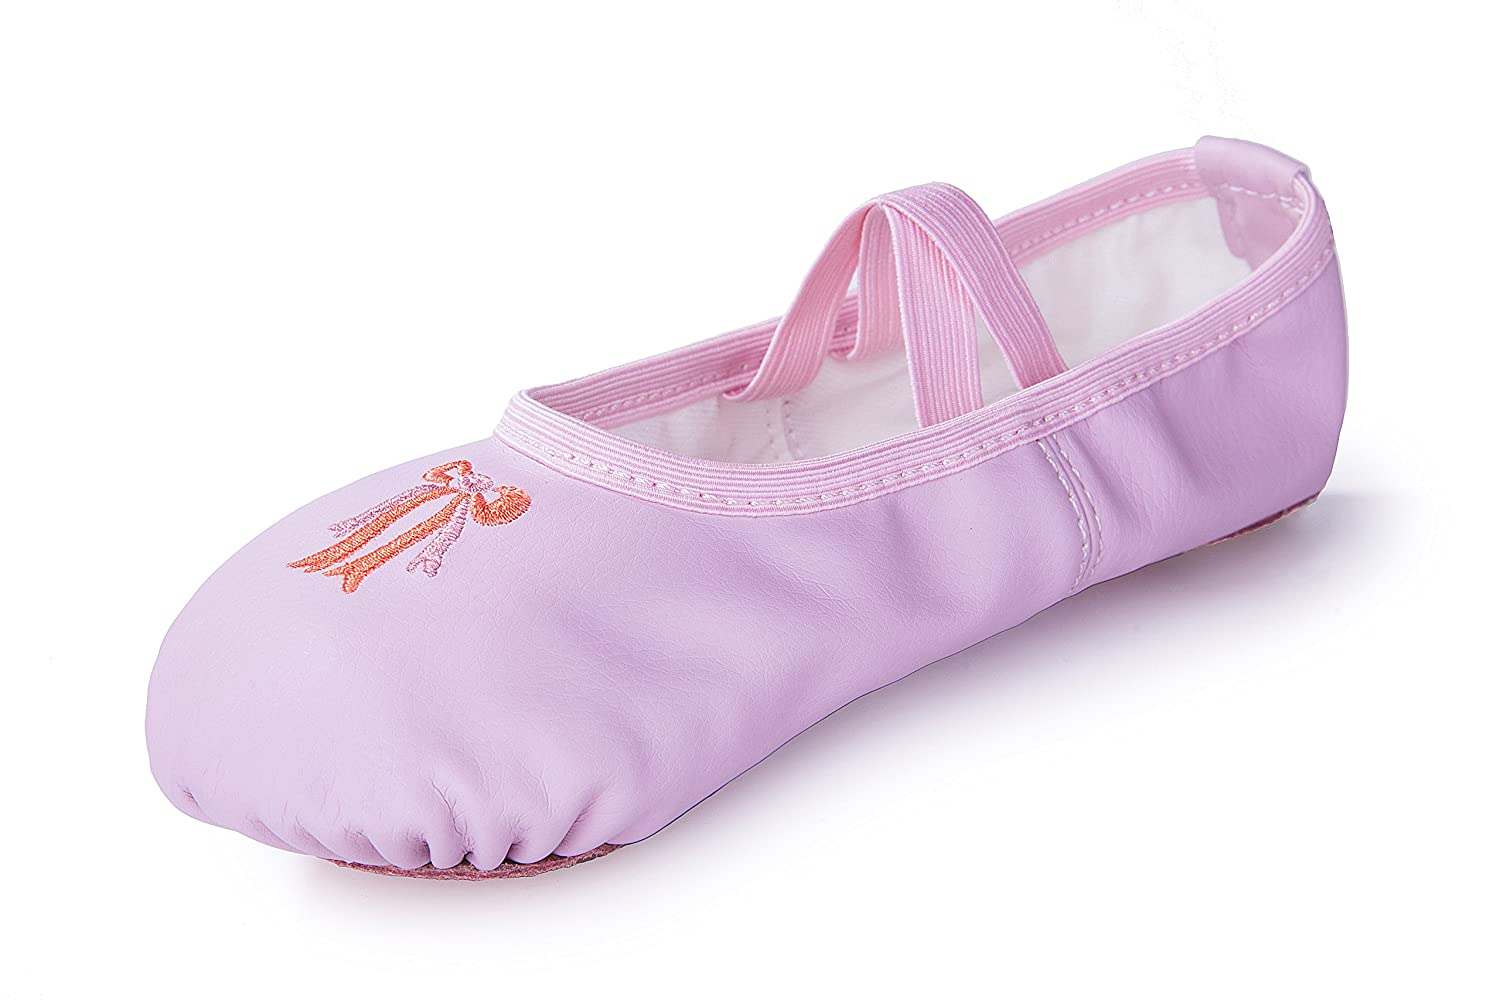 Girls Leather Ballet Dance Slipper Split-Sole Shoes (Toddler/Little Kid)